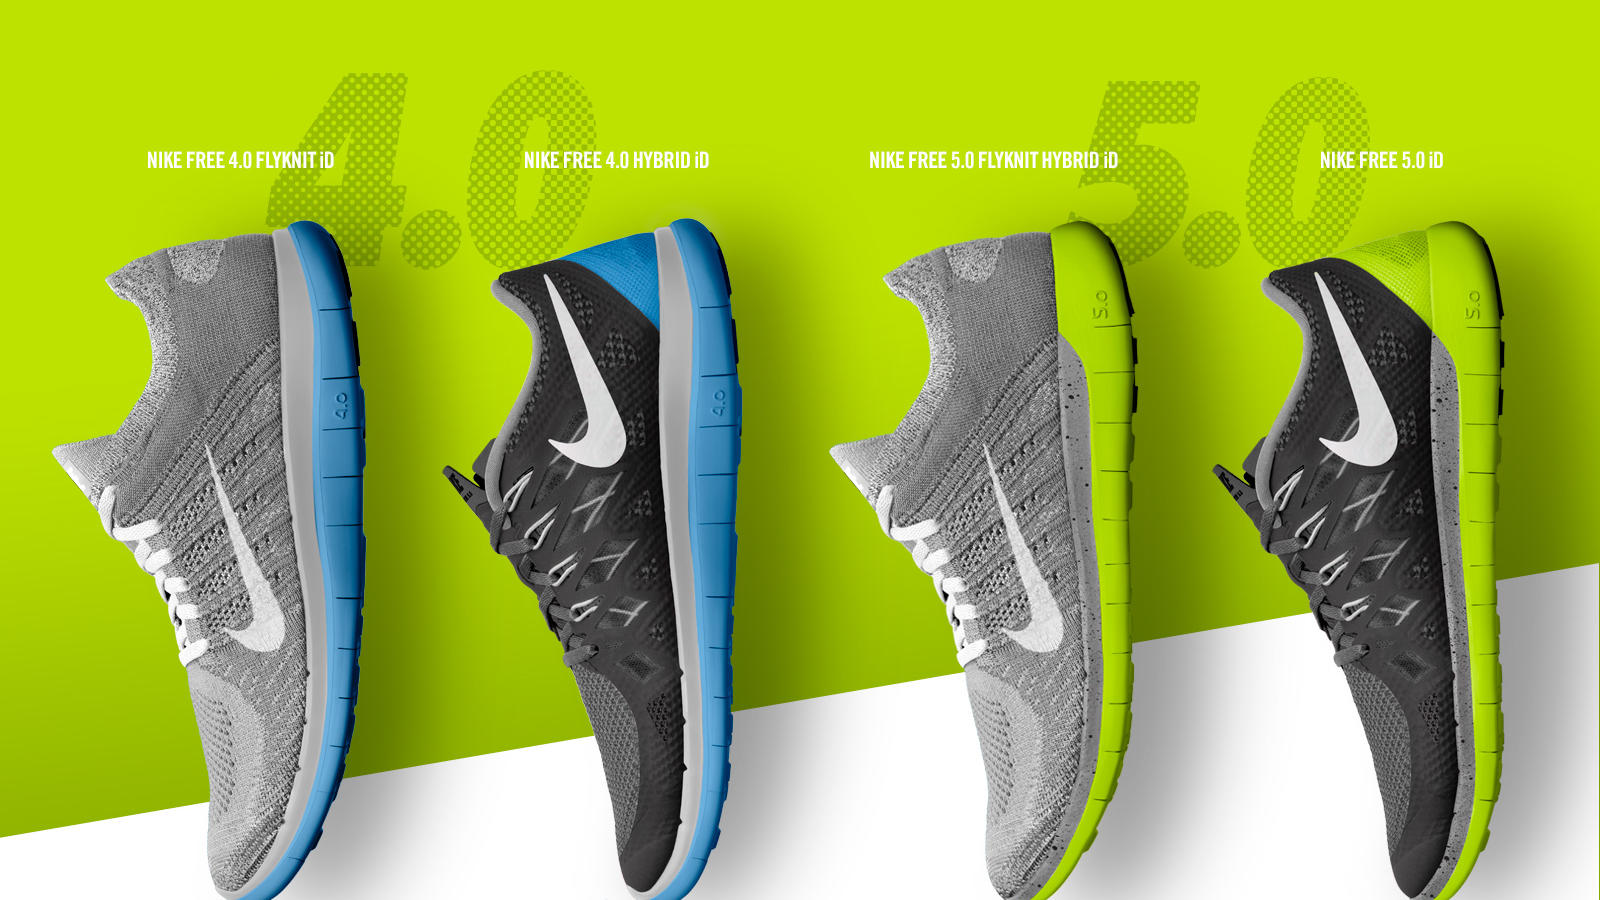 official photos 6a81e 05cb0 Women s Nike Free 4.0 Flyknit. Nike Free 2014 NIKEiD Collection